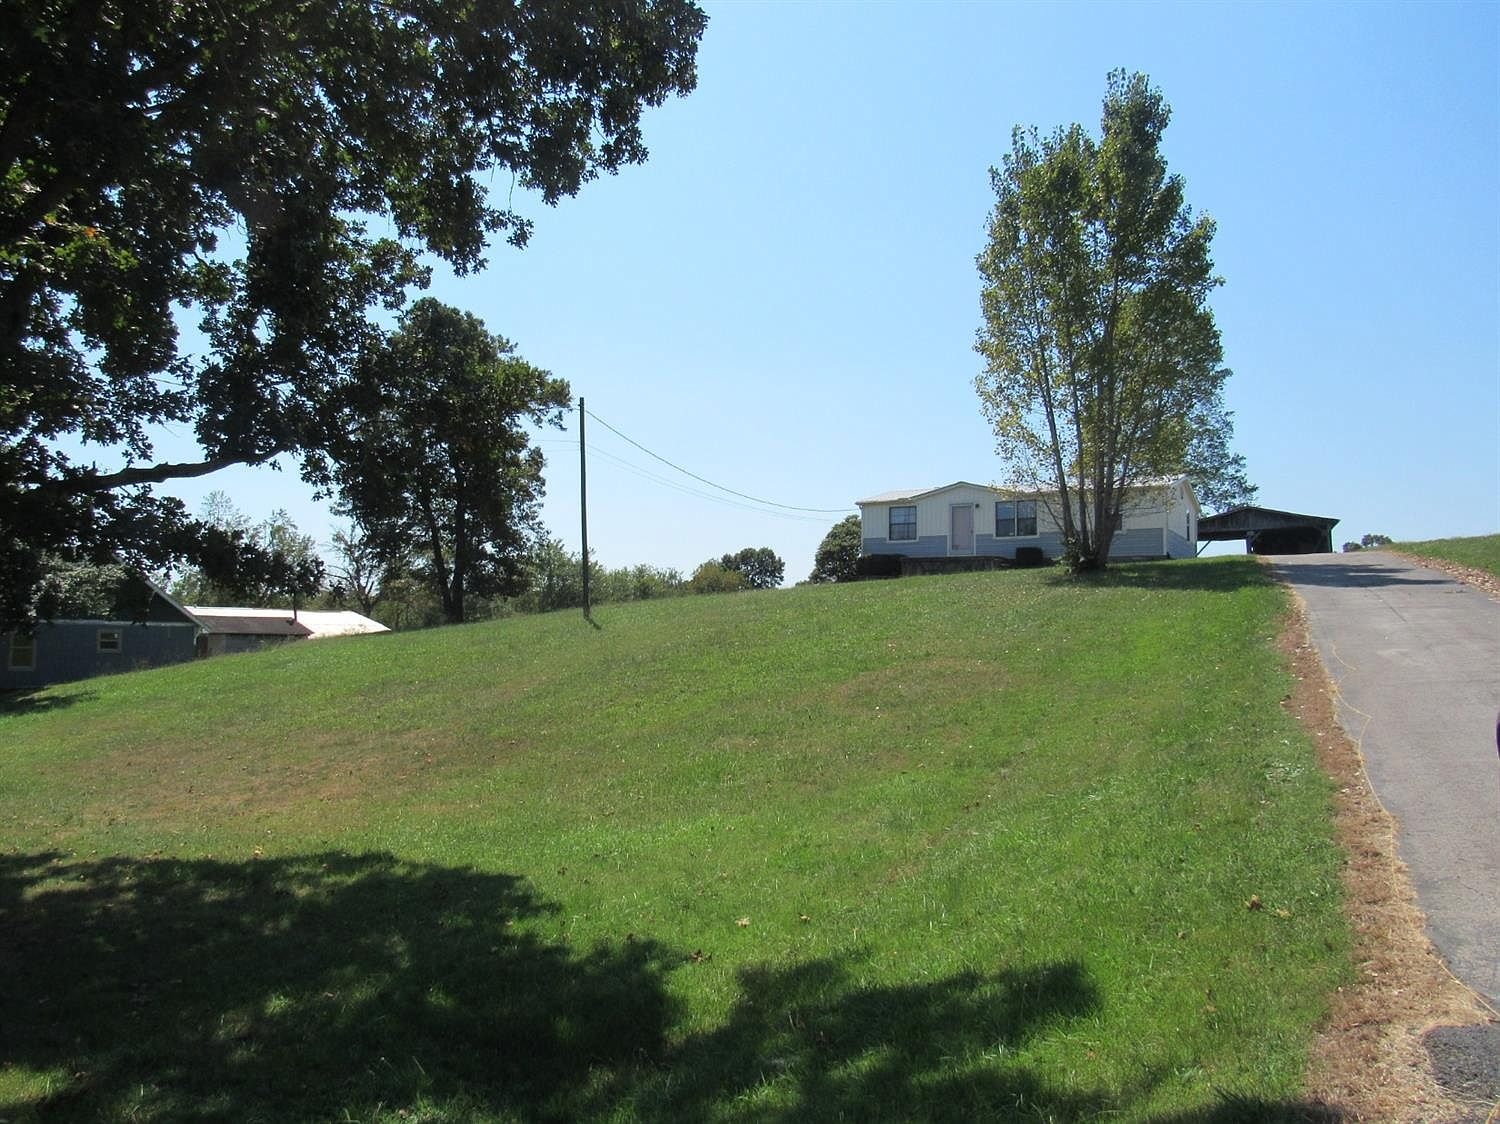 2345 N Highway 25 W Williamsburg Ky 40769 Mls 20001388 Zillow